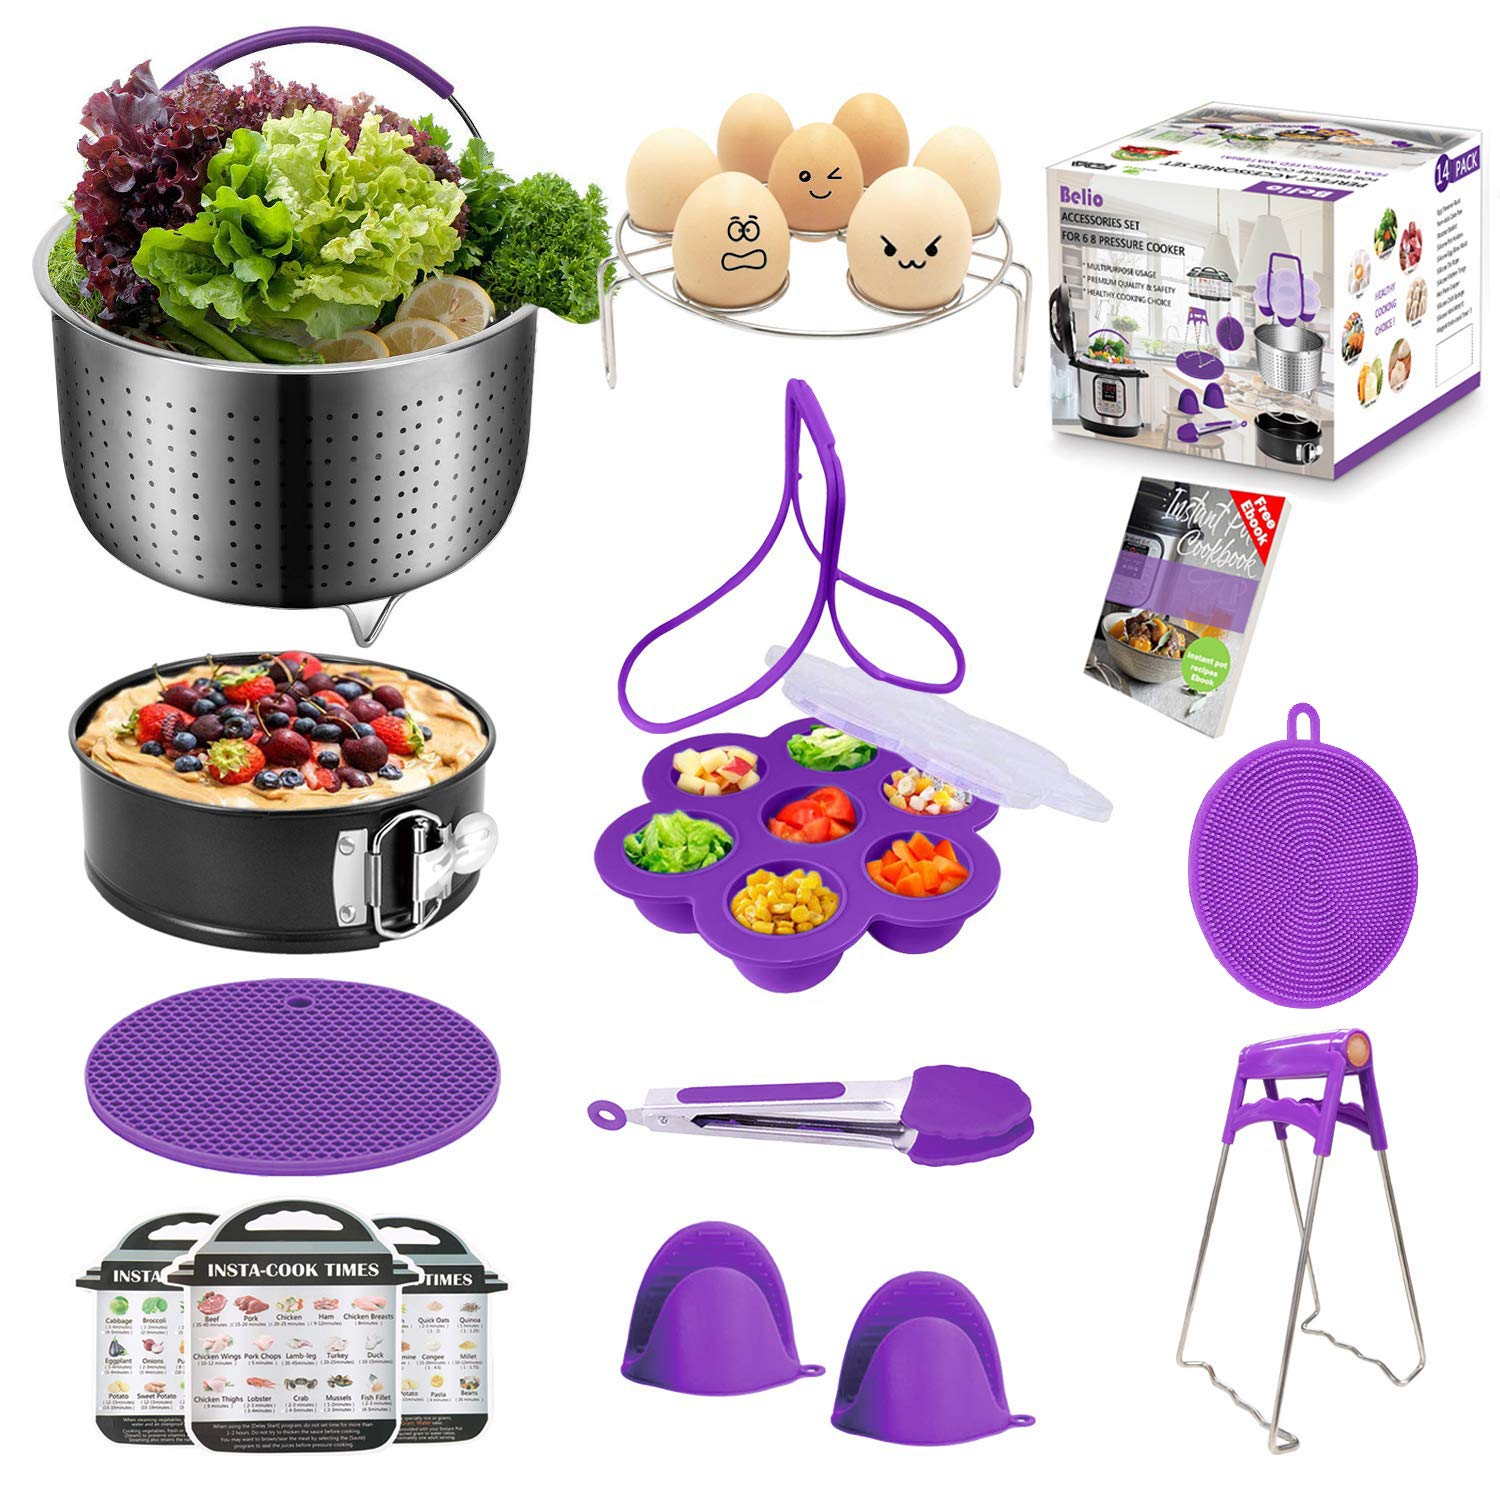 Belio 14 Pcs Pressure Cooker Accessories Set Compatible with Instant Pot 5,6,8 Qt-Include Steamer Basket,Springform Pan,Egg Bites Mold,Oven Mitts,Cheat Sheets, Silicone Scrubber,etc.